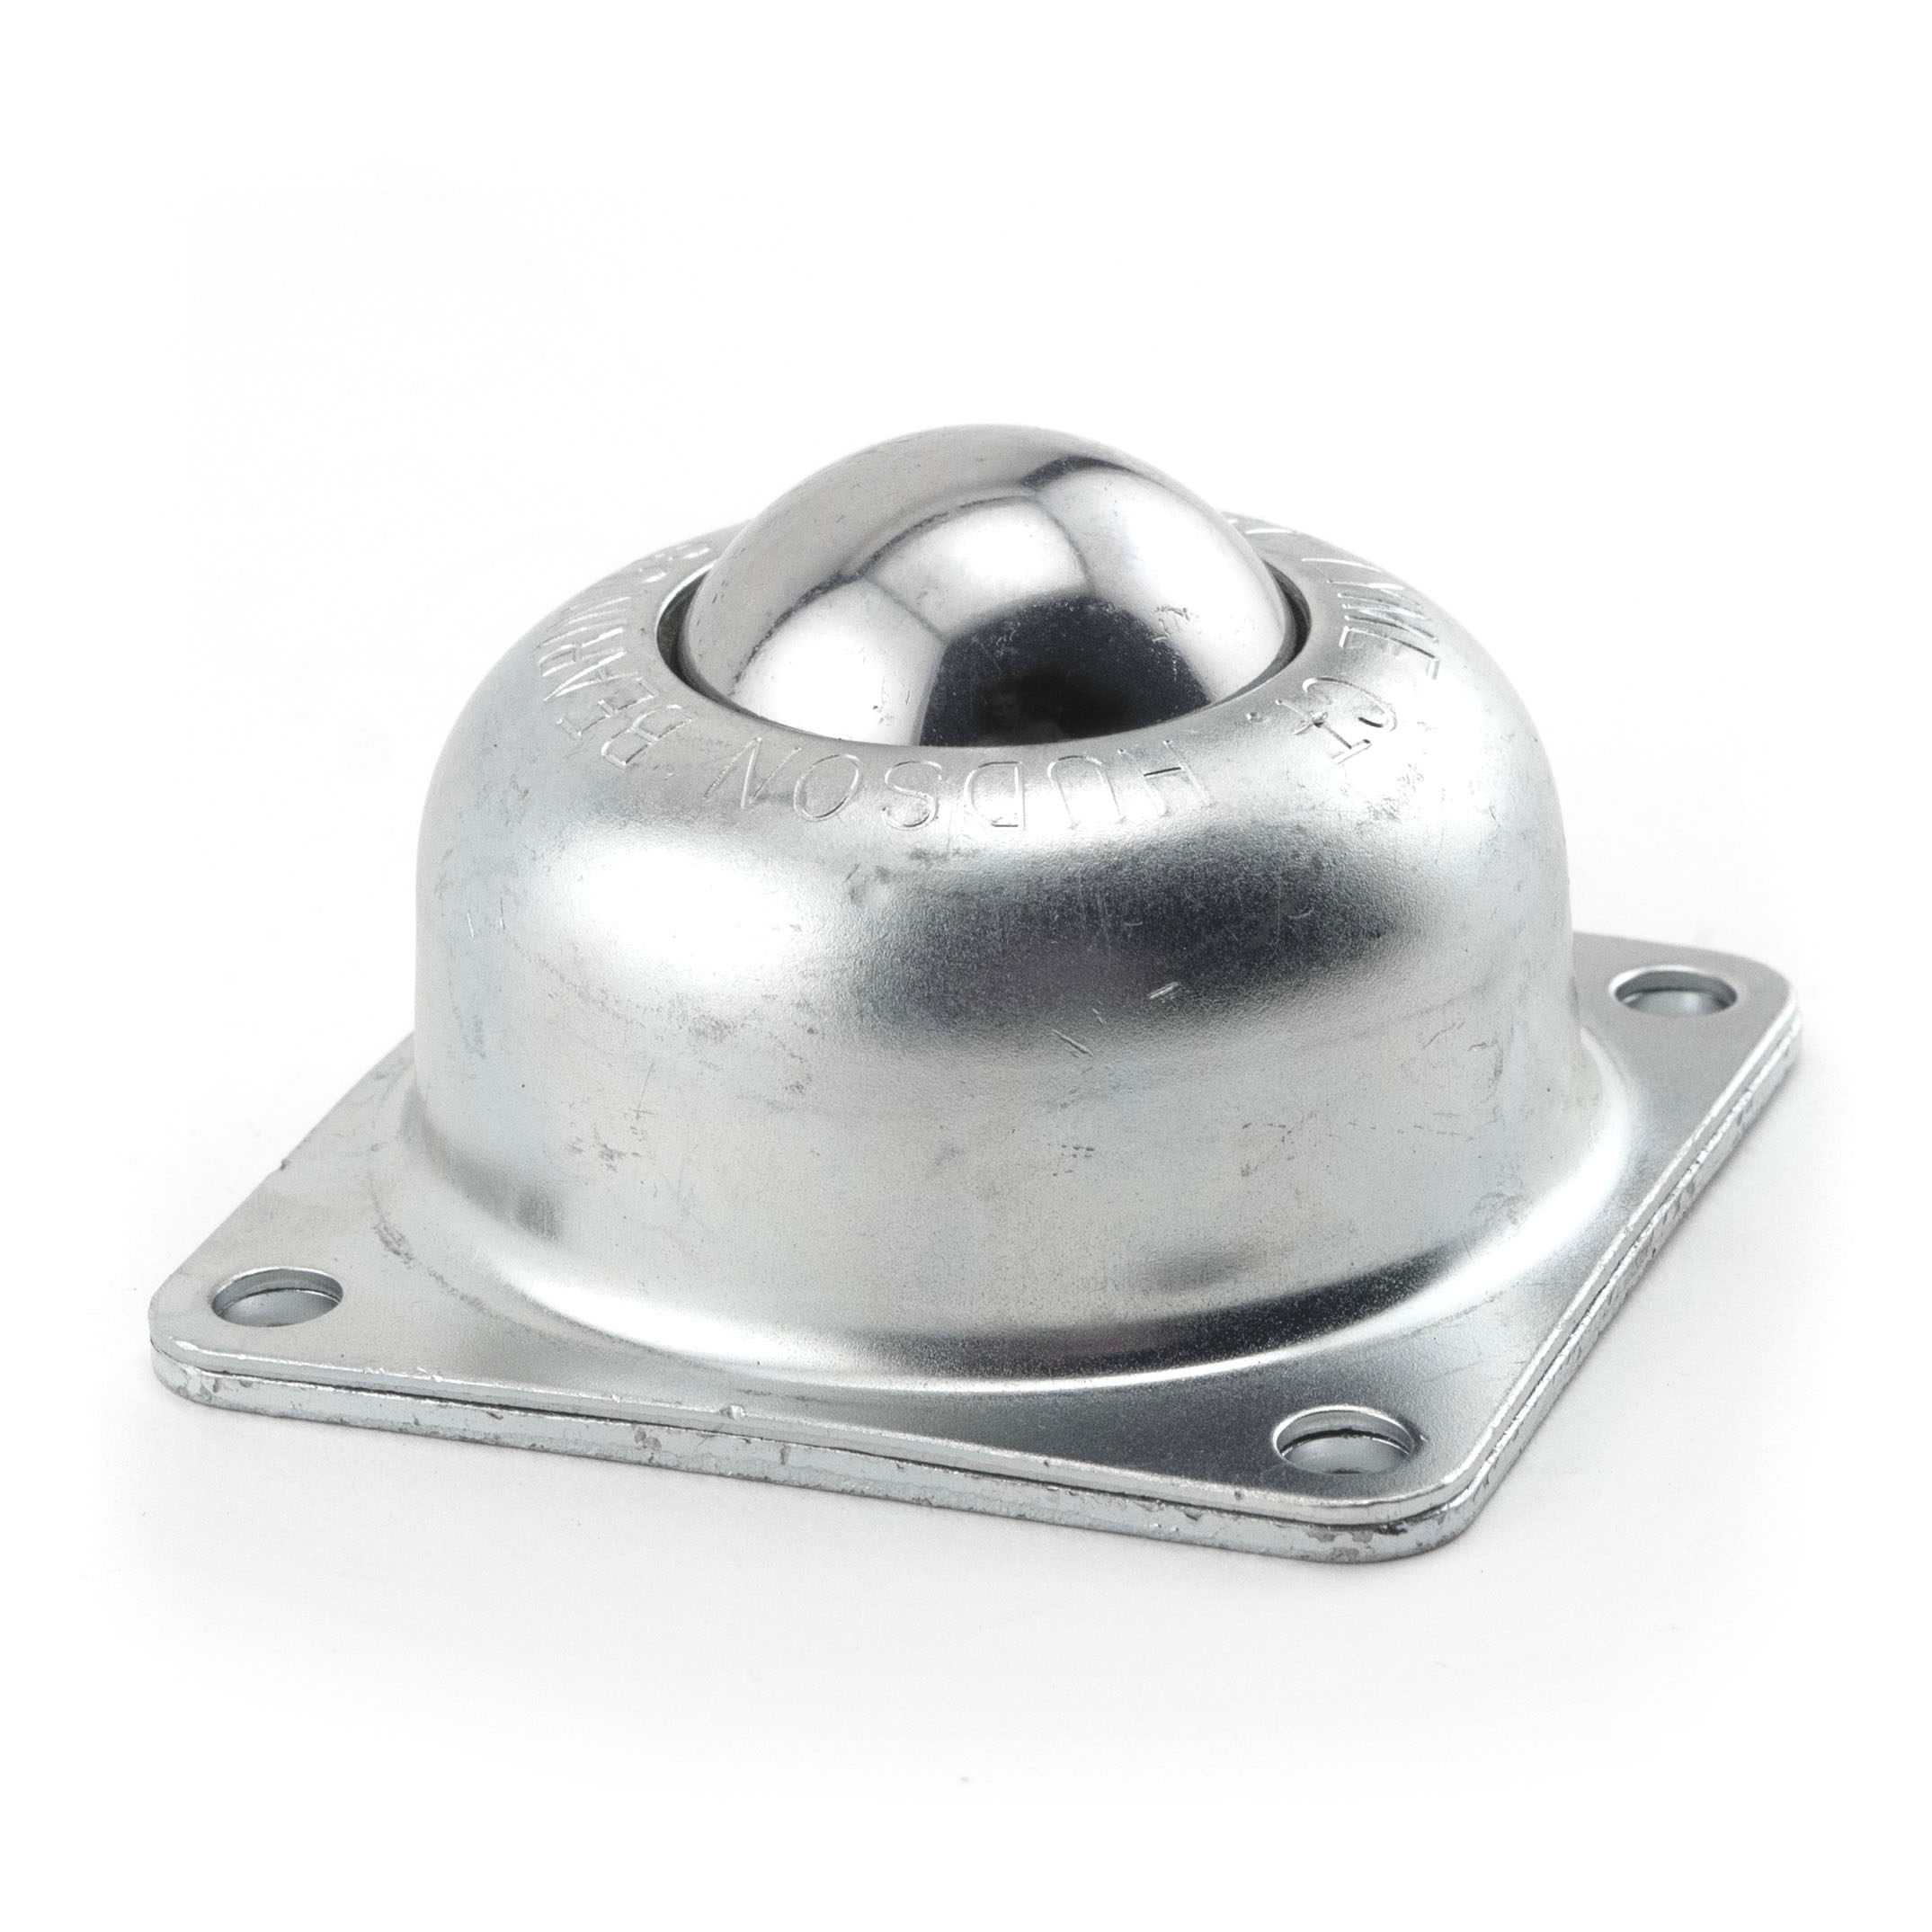 "Ball Transfer; 1-1/2""; carbon steel ball; carbon steel flange (3""x3""; holes: 2-7/16""x2-7/16""; 1/4"" bolt); 250#; 1-13/16"" load height (89367)"